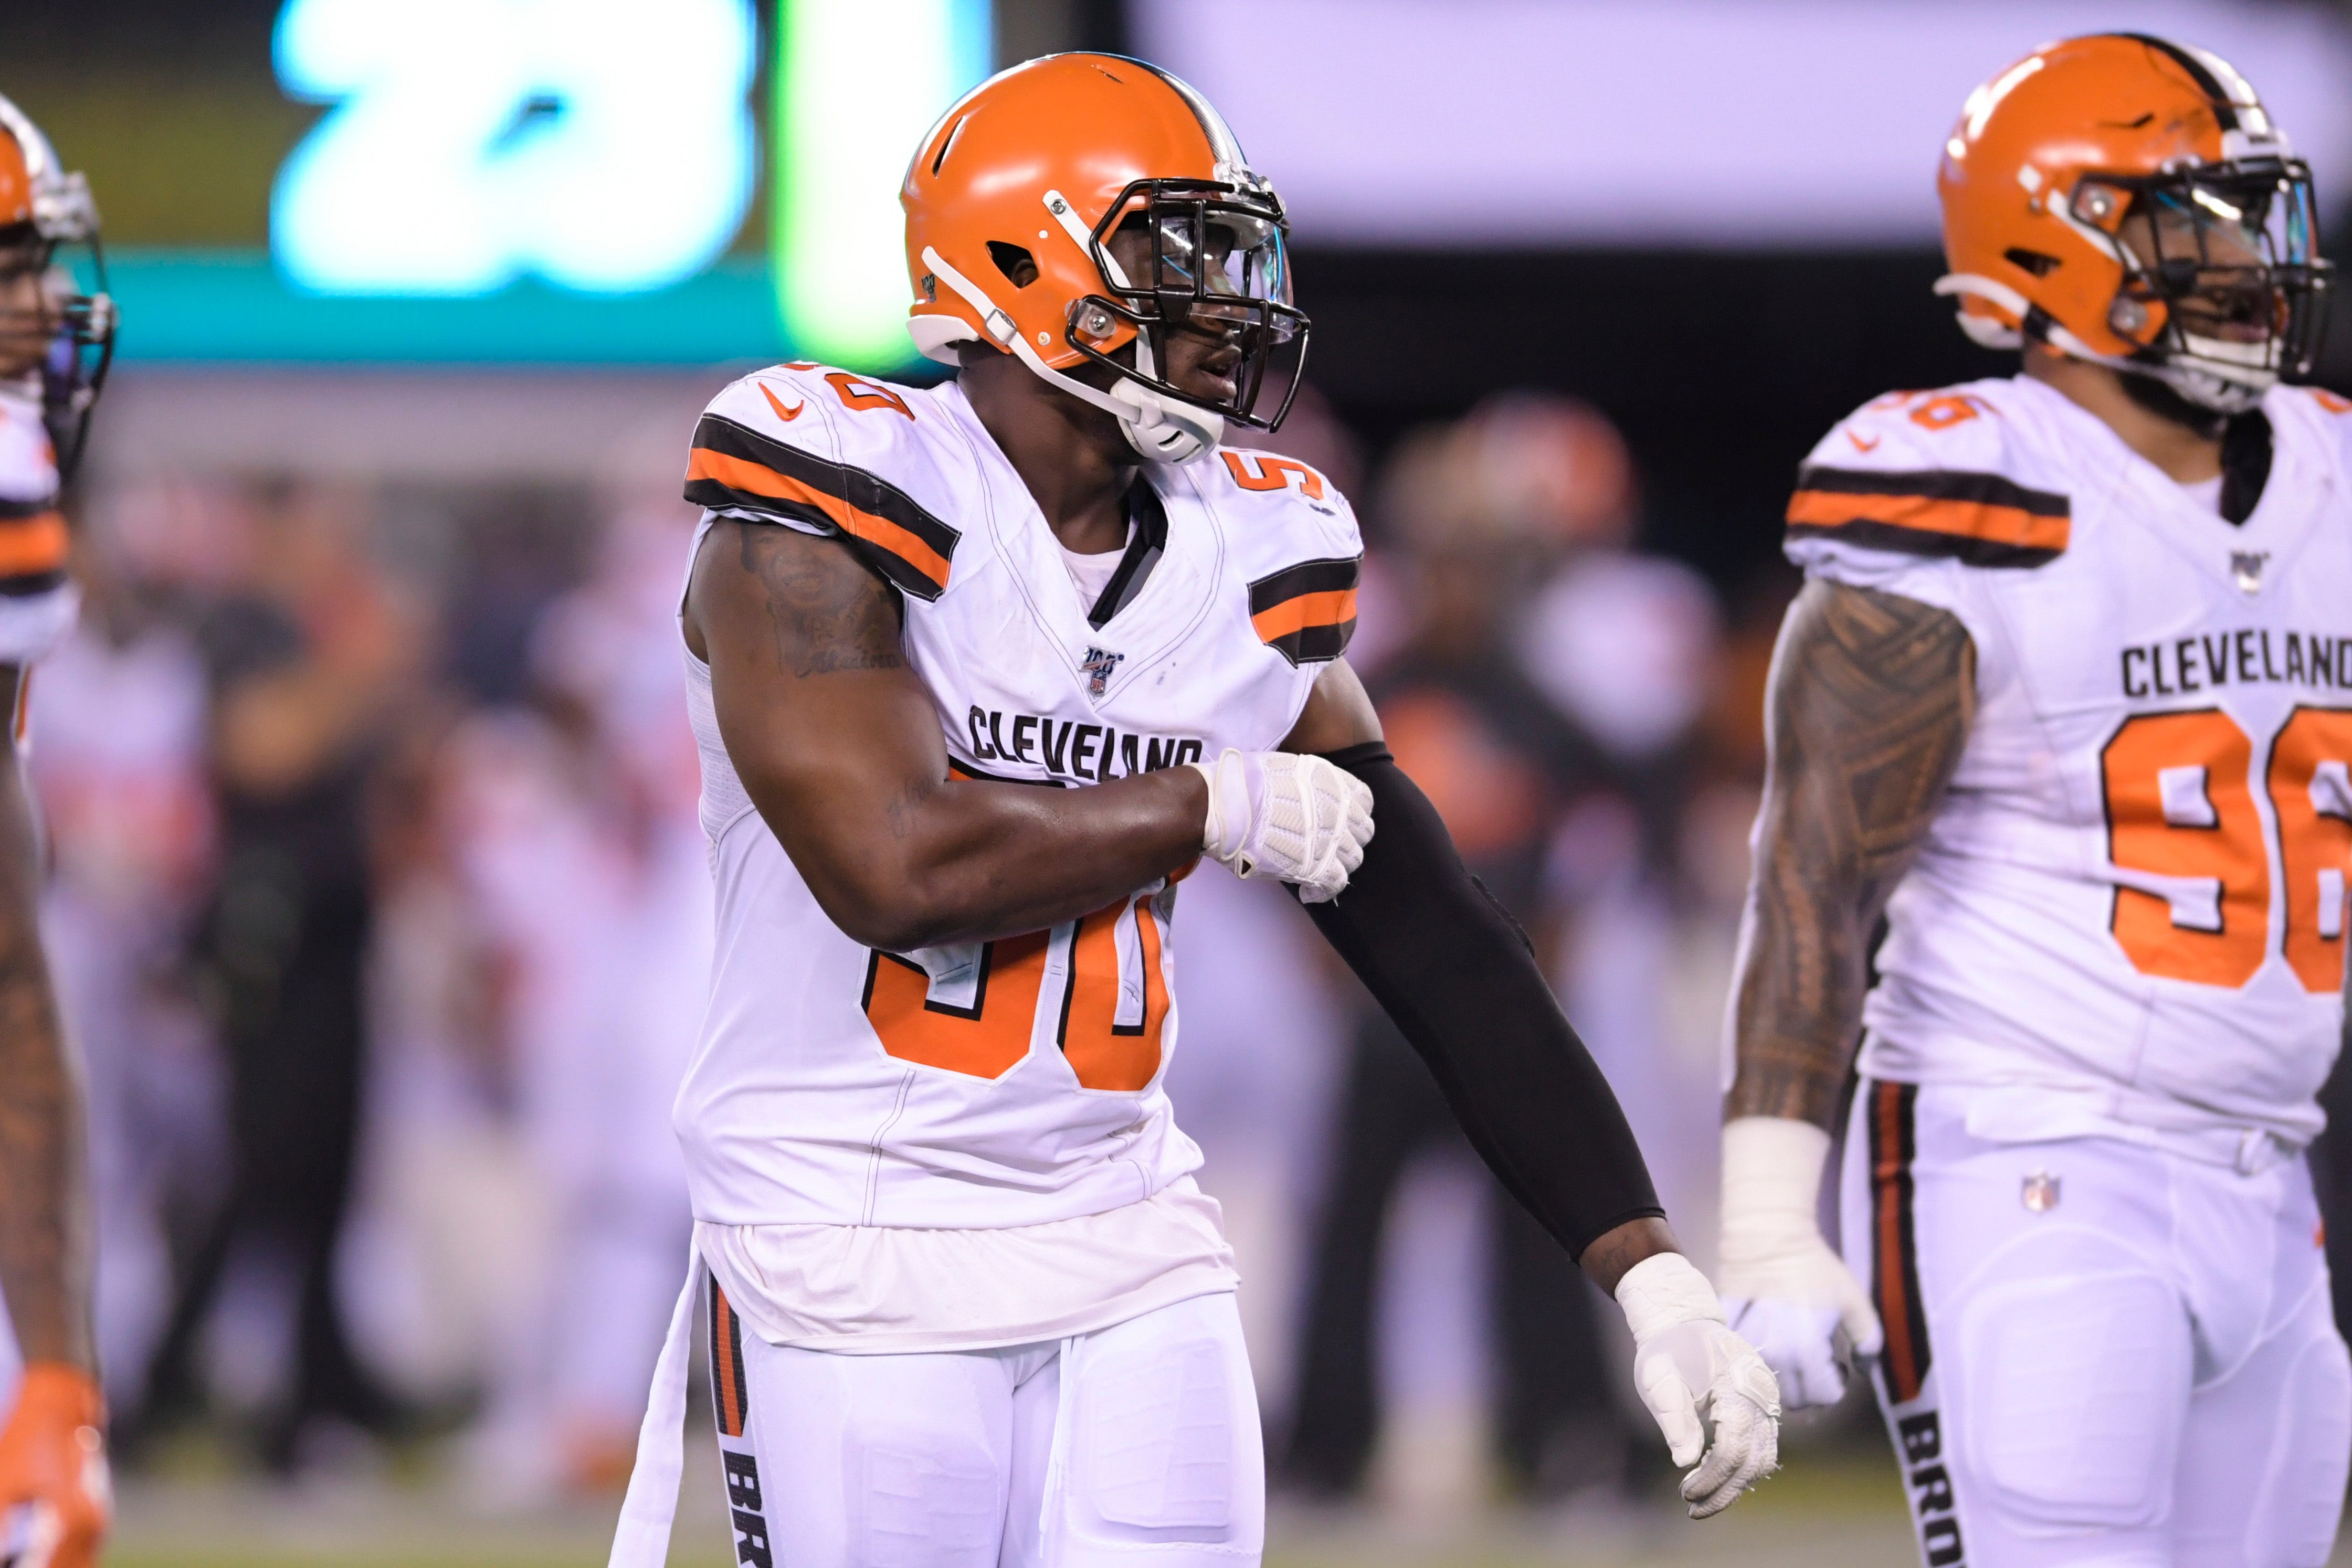 Cleveland Browns' Chris Smith opens up on playing for girlfriend who died in accident thumbnail